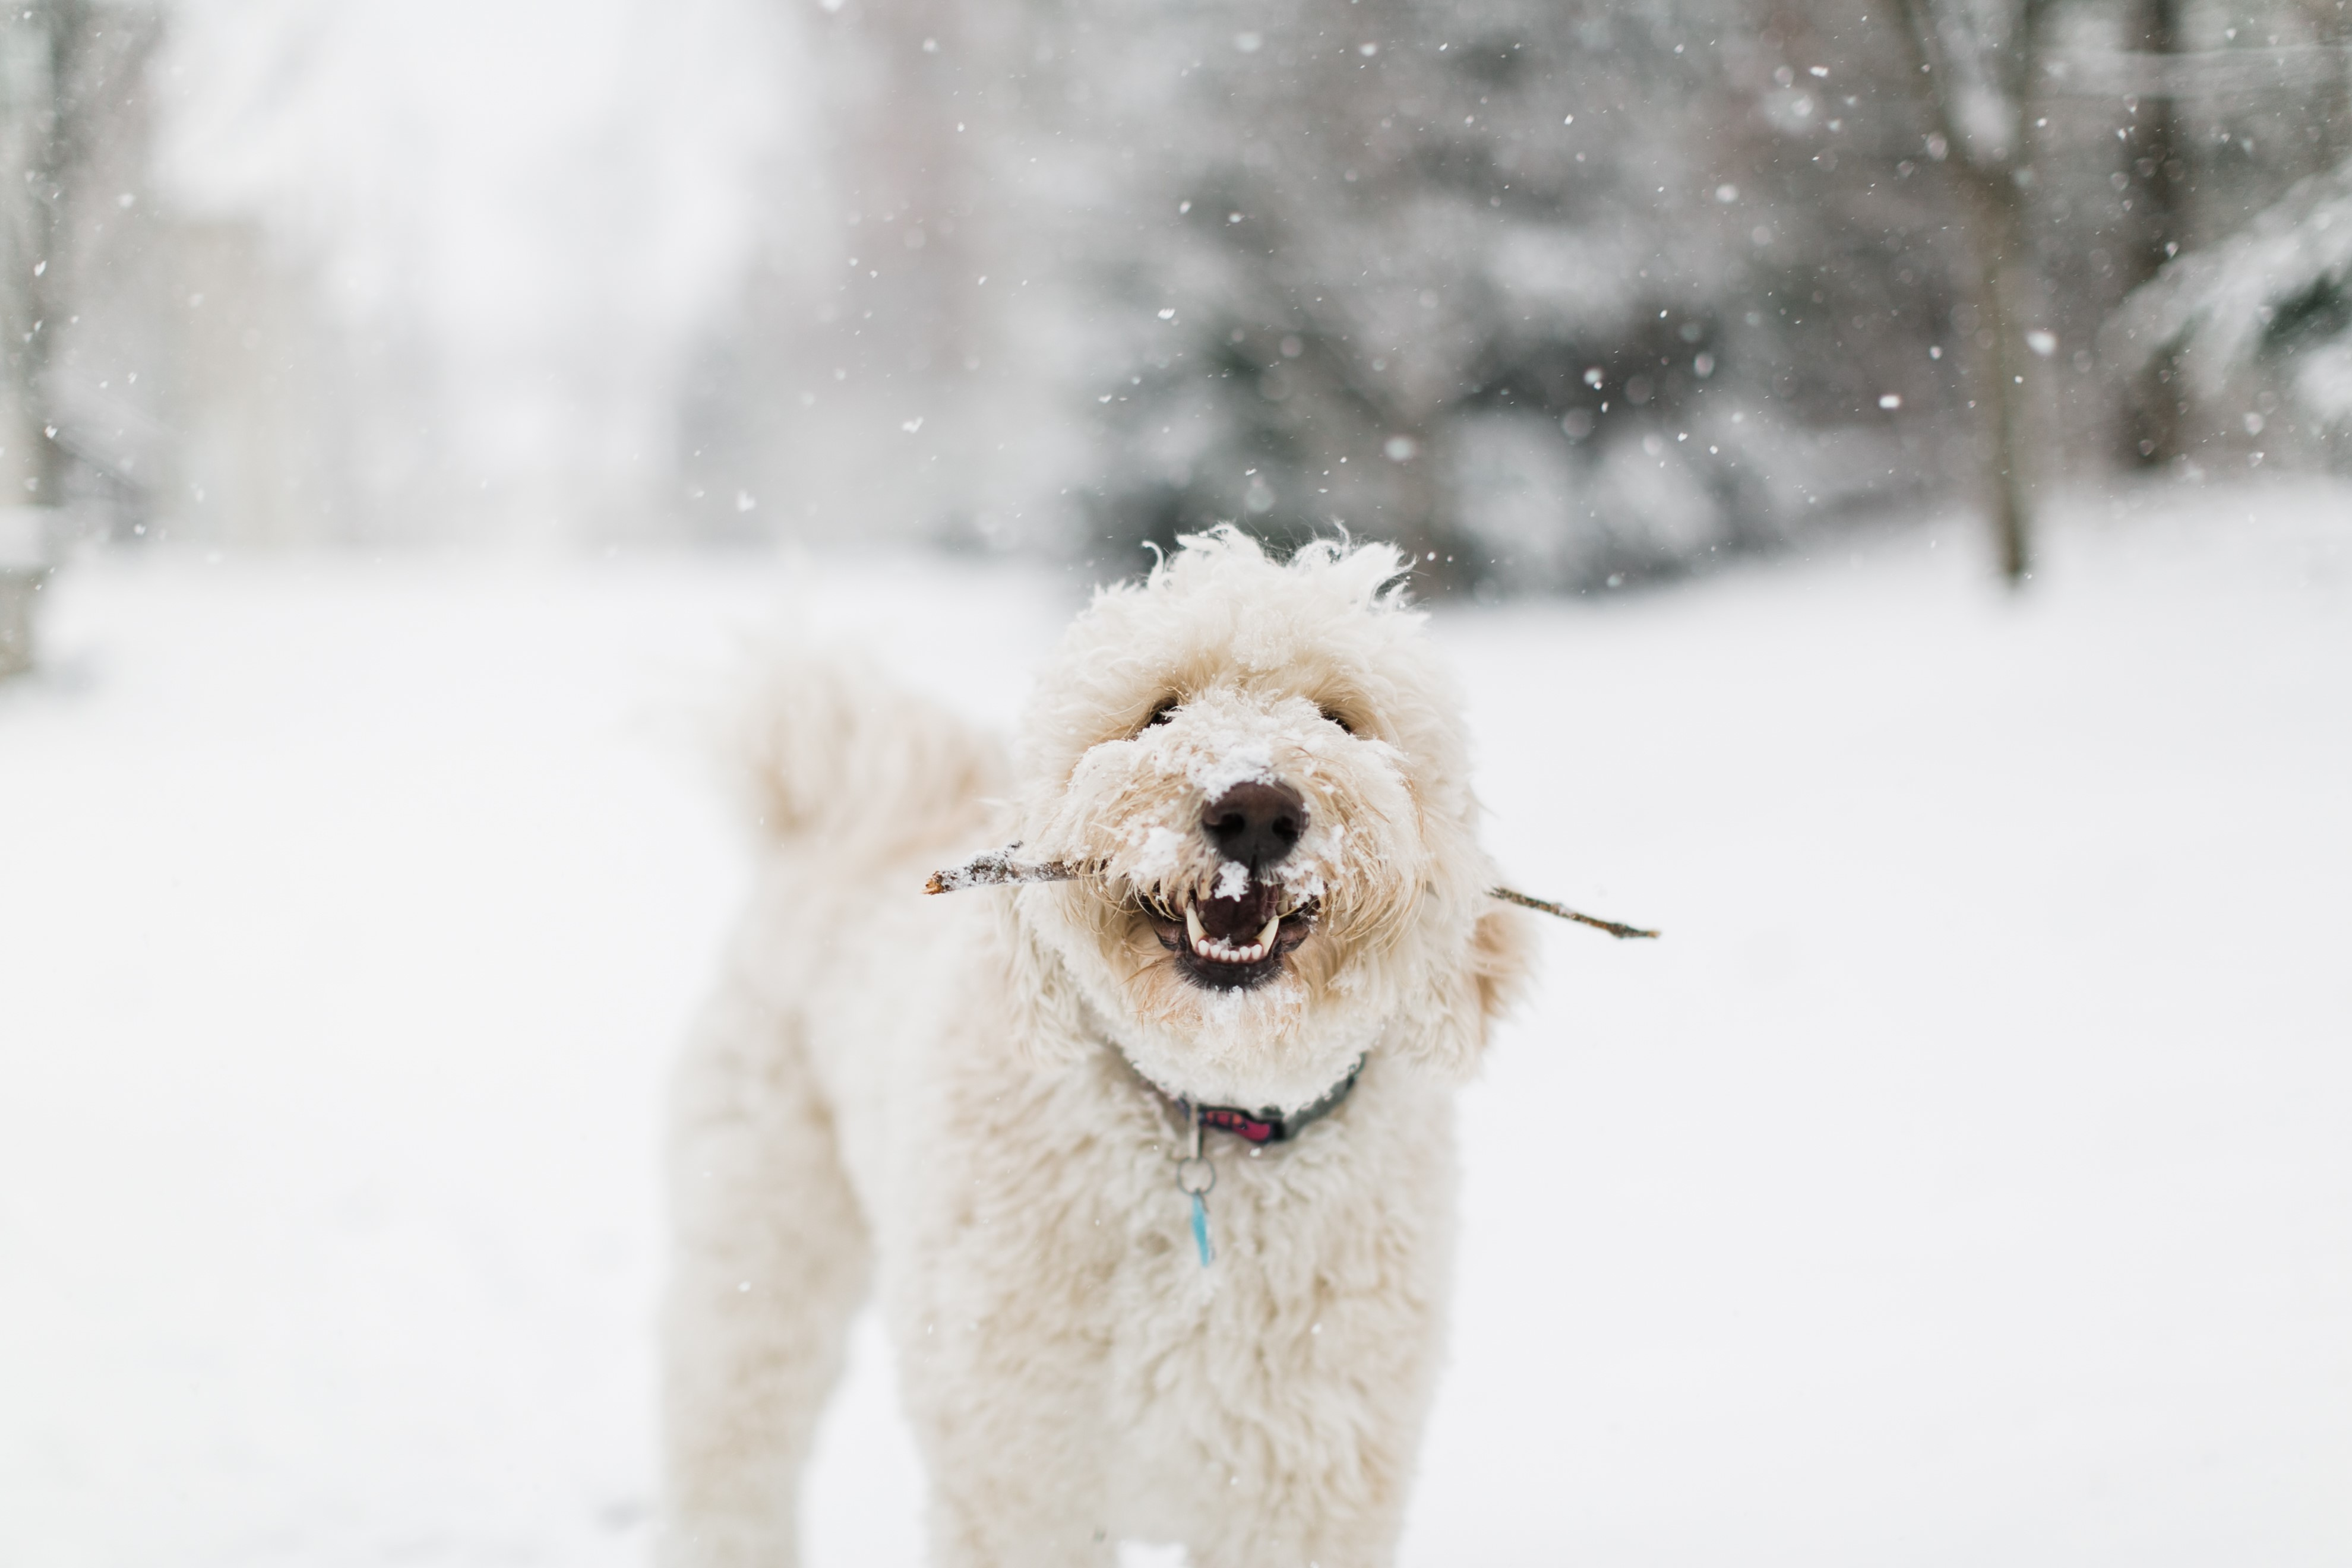 D.C. finally got its first real snowfall of the season -- on March 21! Given that it's the probably the only flakes we'll see for a while, the pups of the DMV decided to really live it up. Check out a few of the adorable pets we spotted chilling in the snow today!{ } (Image: Courtesy IG user @mroddaphoto)